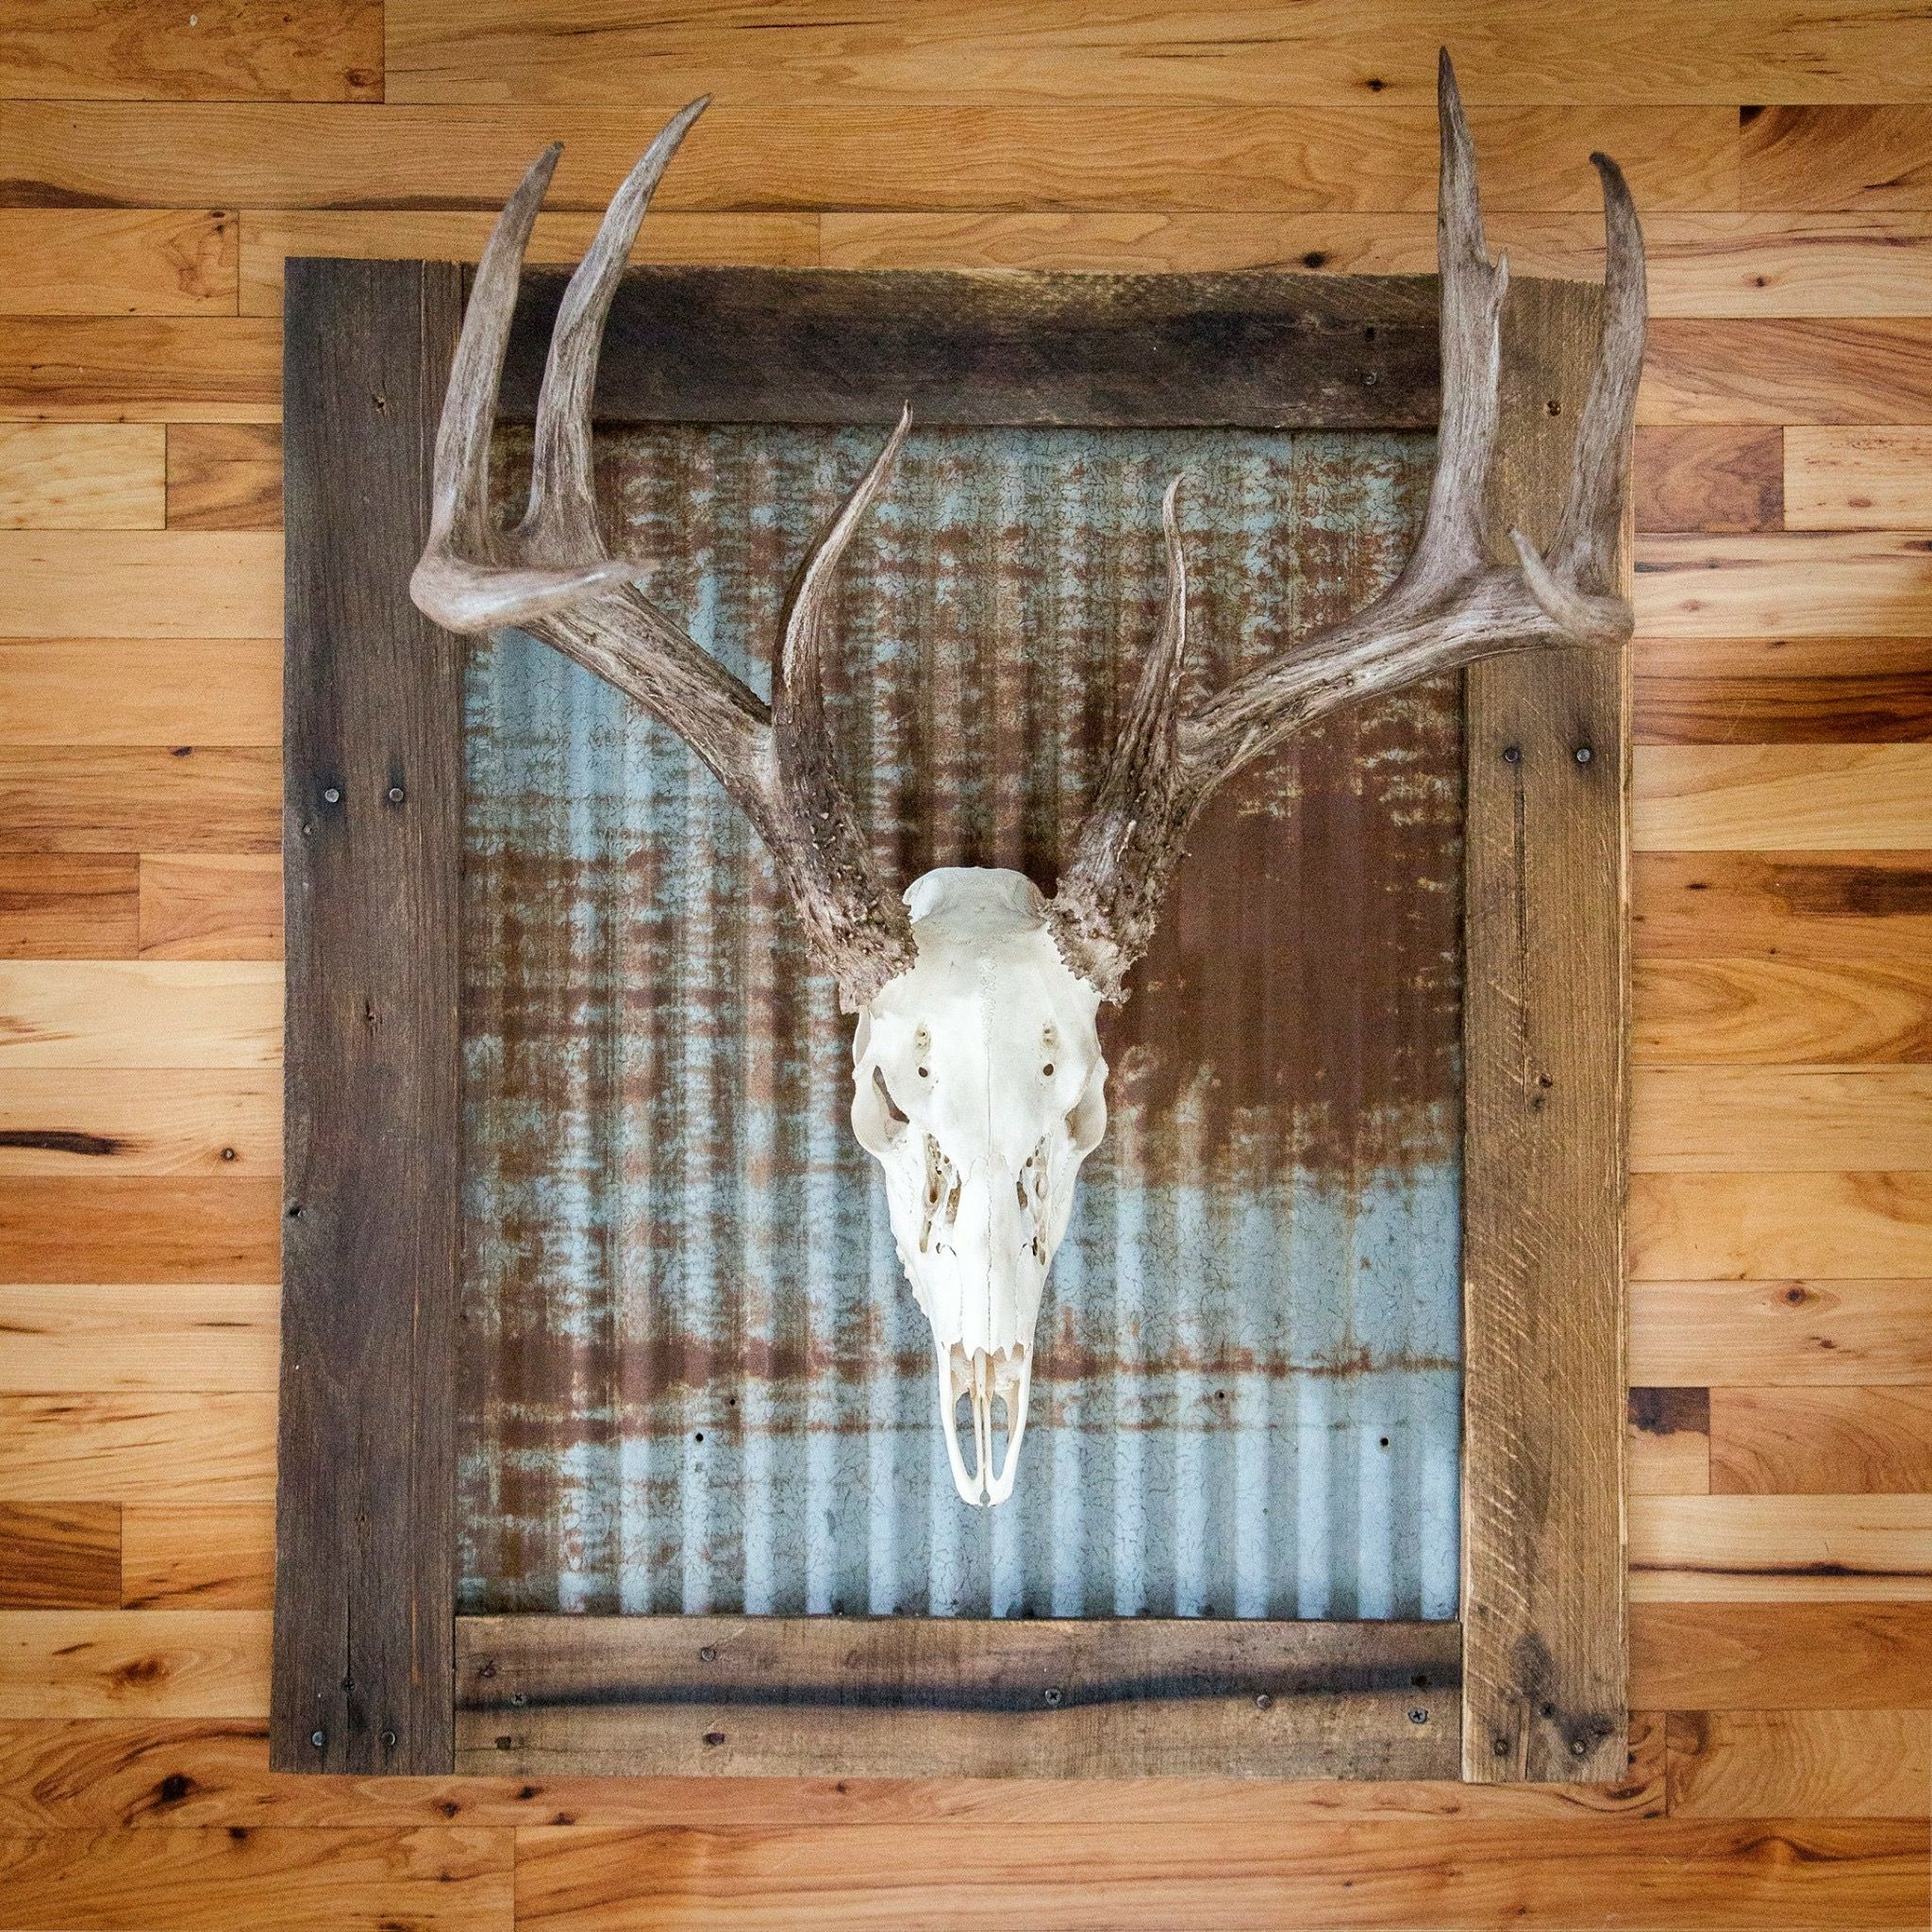 Whitened Skull With Rustic Tin Wall Frame Includes Wall